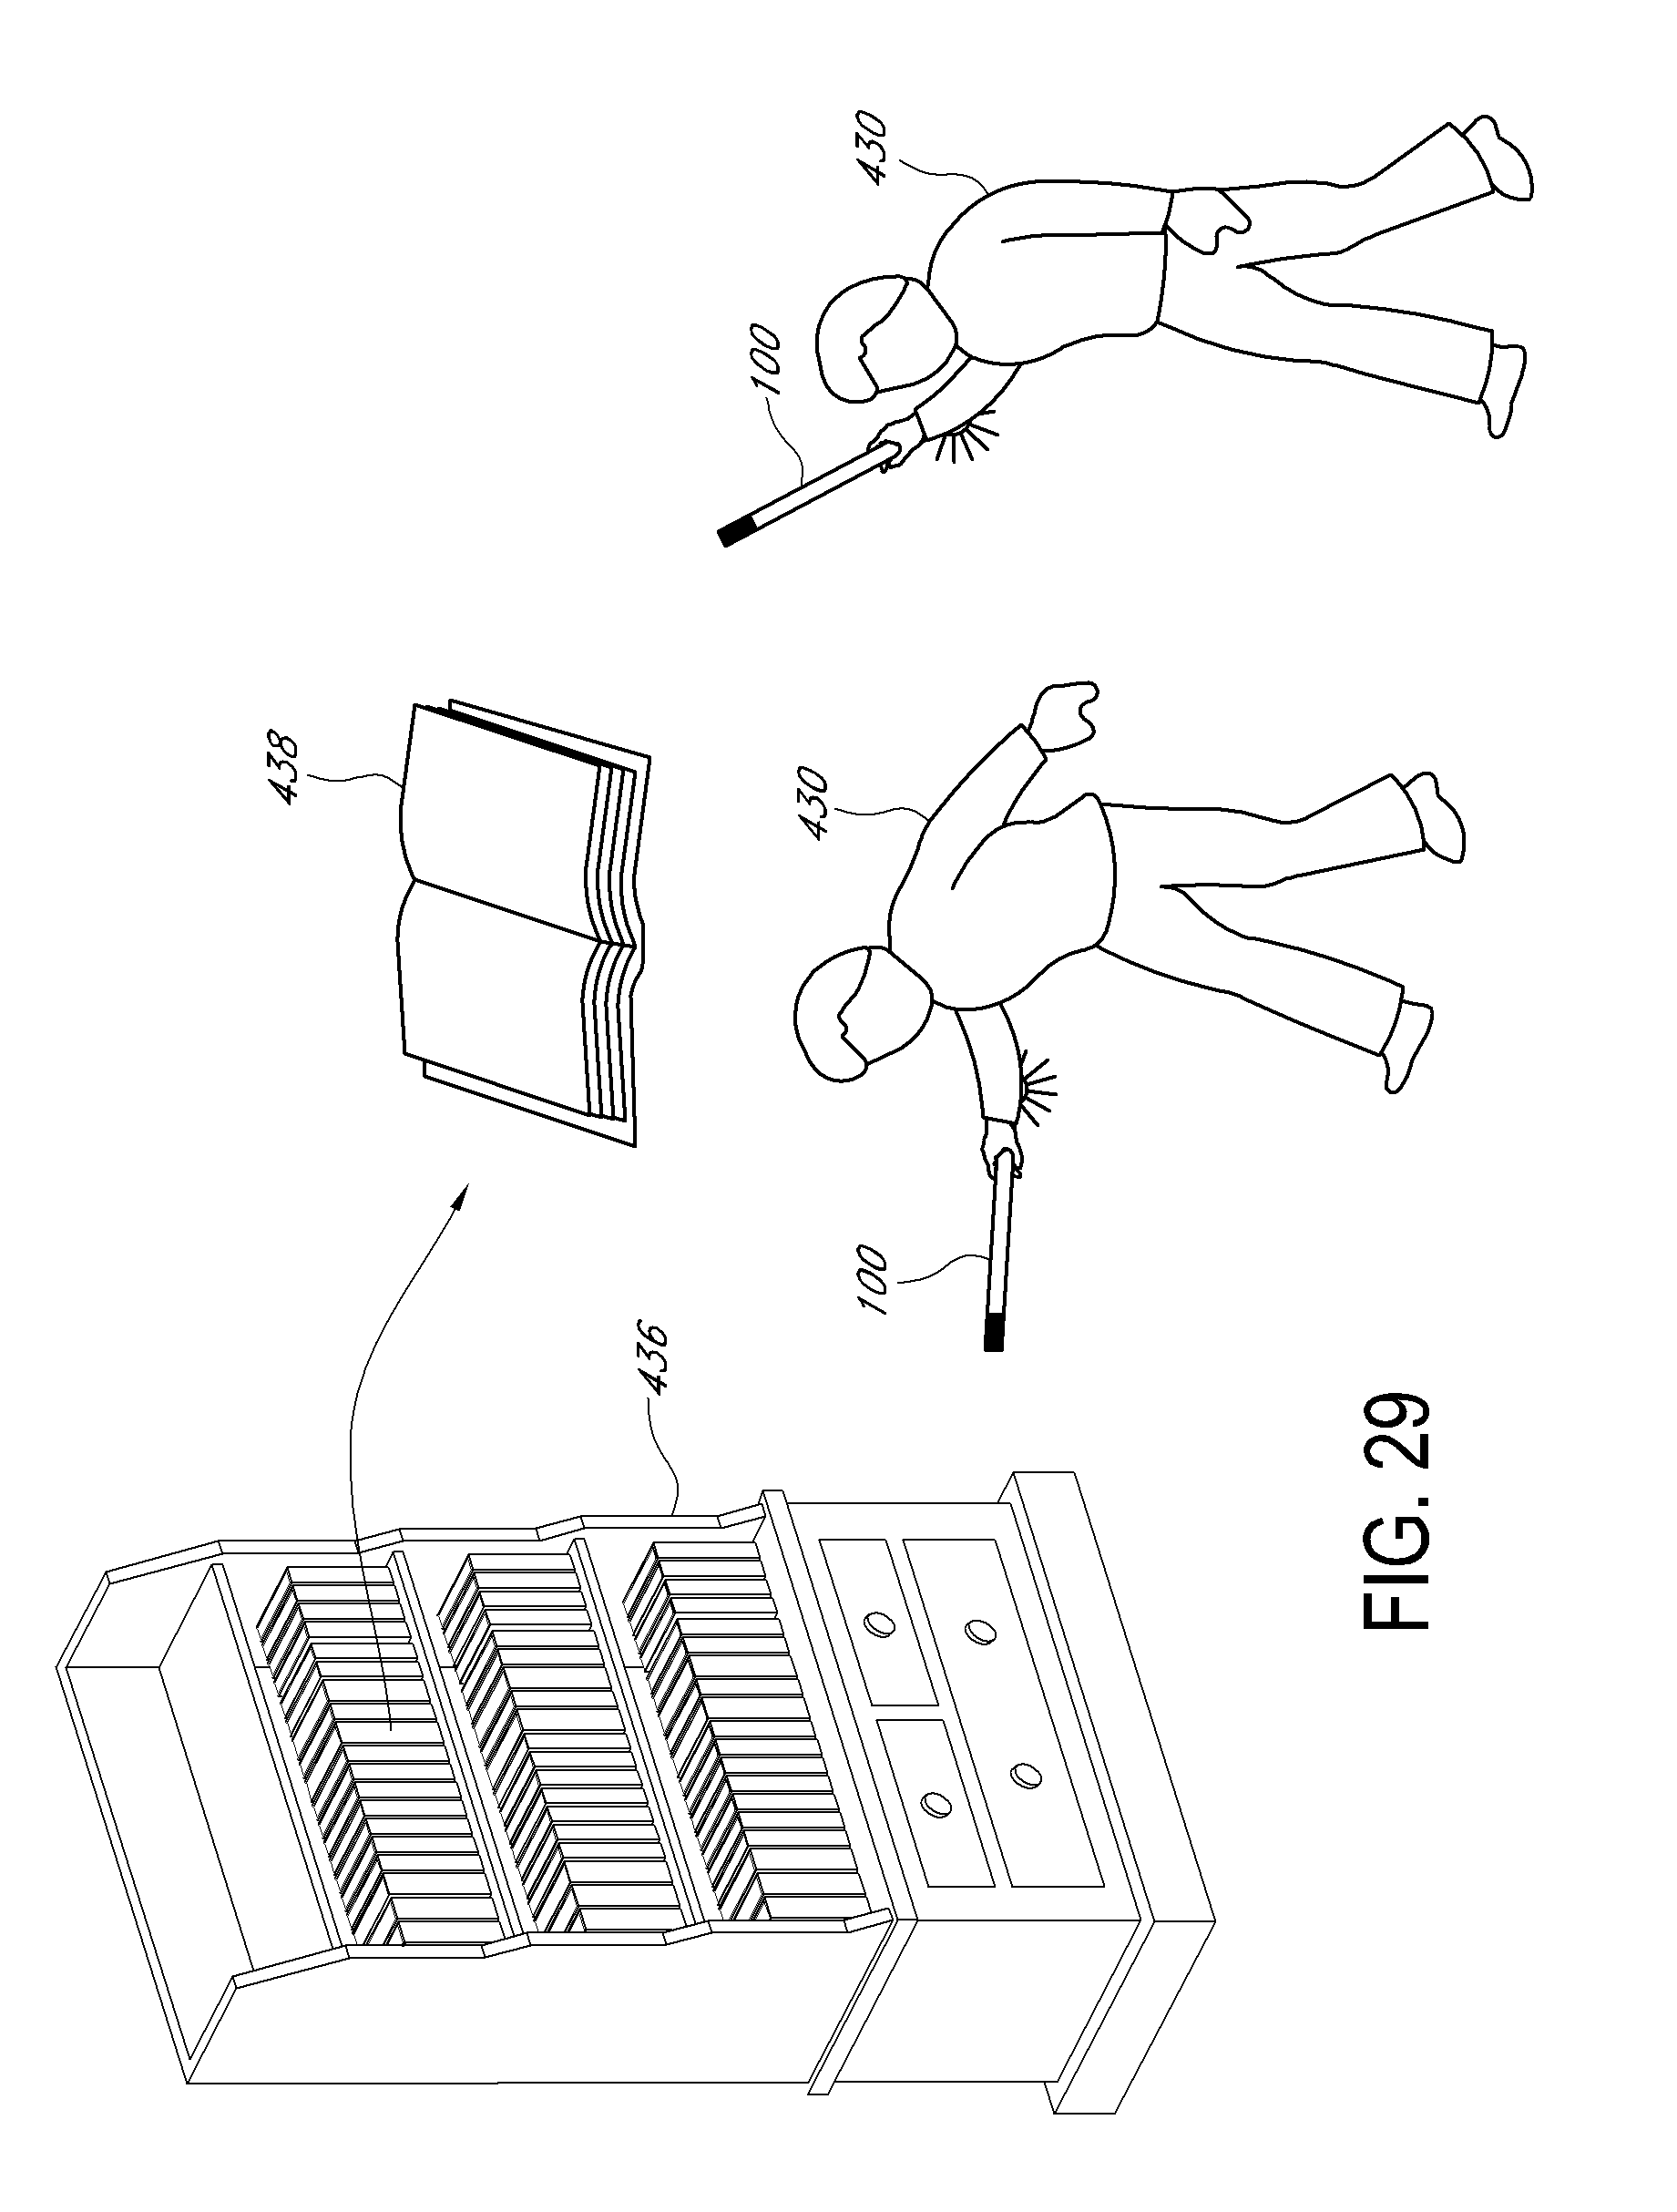 patent images